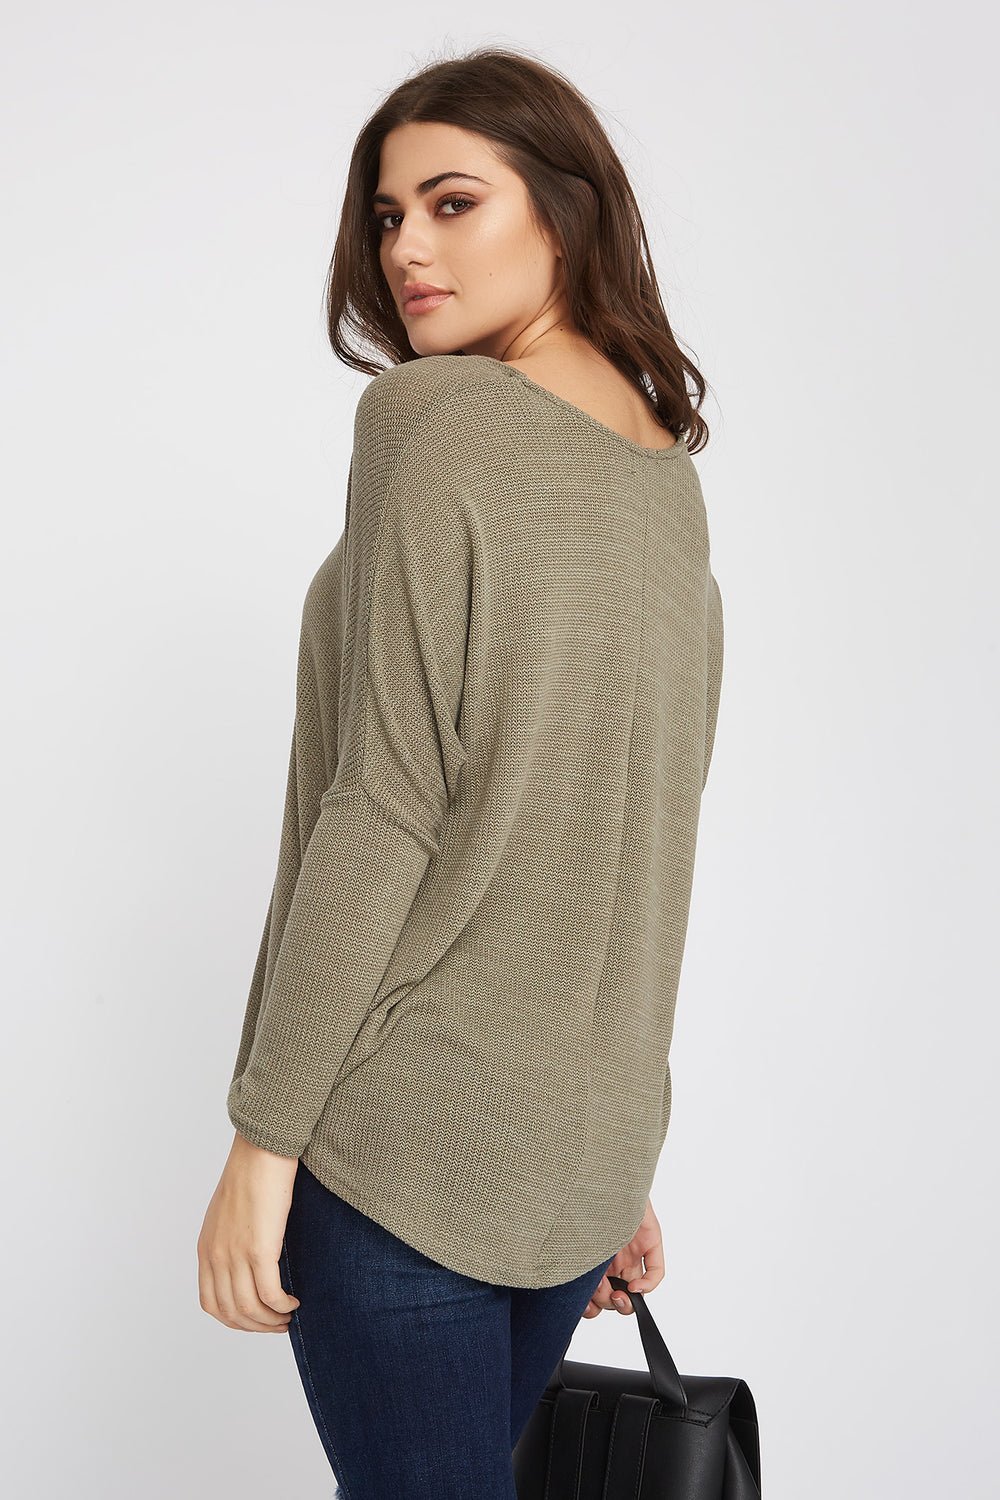 Knit Scoop Neck Long Sleeve Dark Green